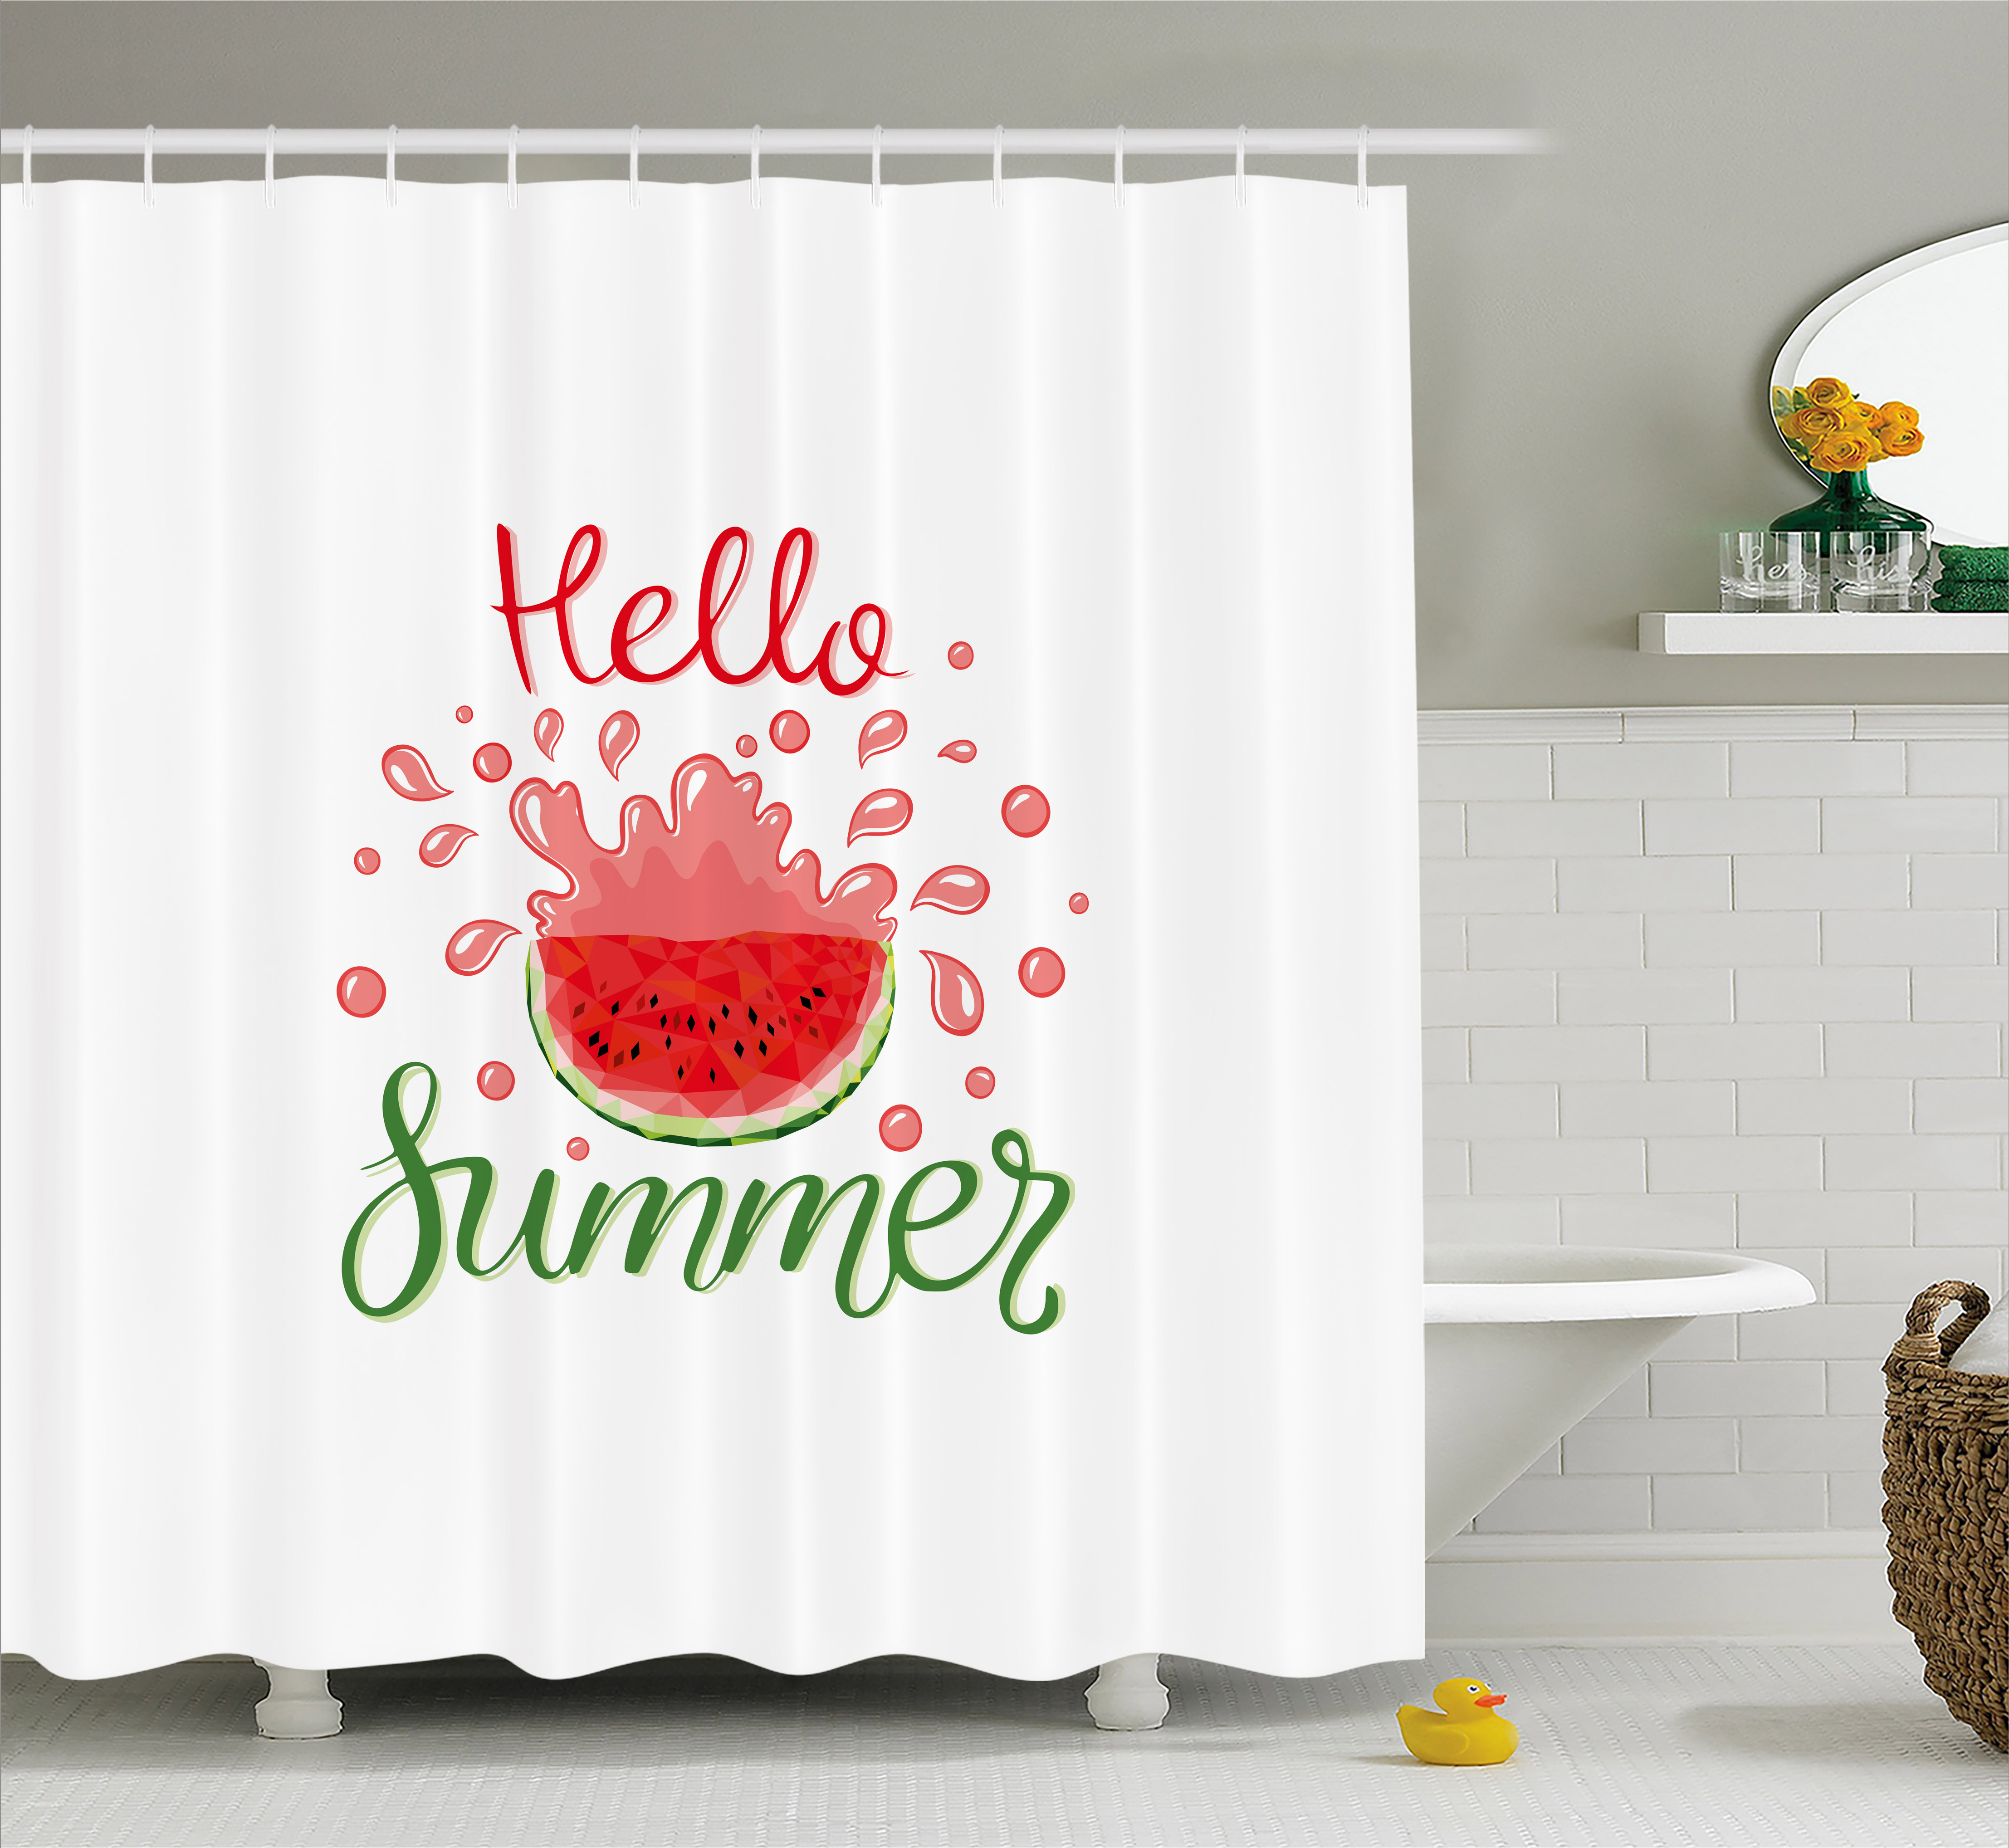 Hello Summer Shower Curtain, Cartoon Design Print and a Seemingly Juicy Watermelon Slice with Seeds Funky, Fabric Bathroom Set with Hooks, 69W X 75L Inches Long, Multicolor, by Ambesonne